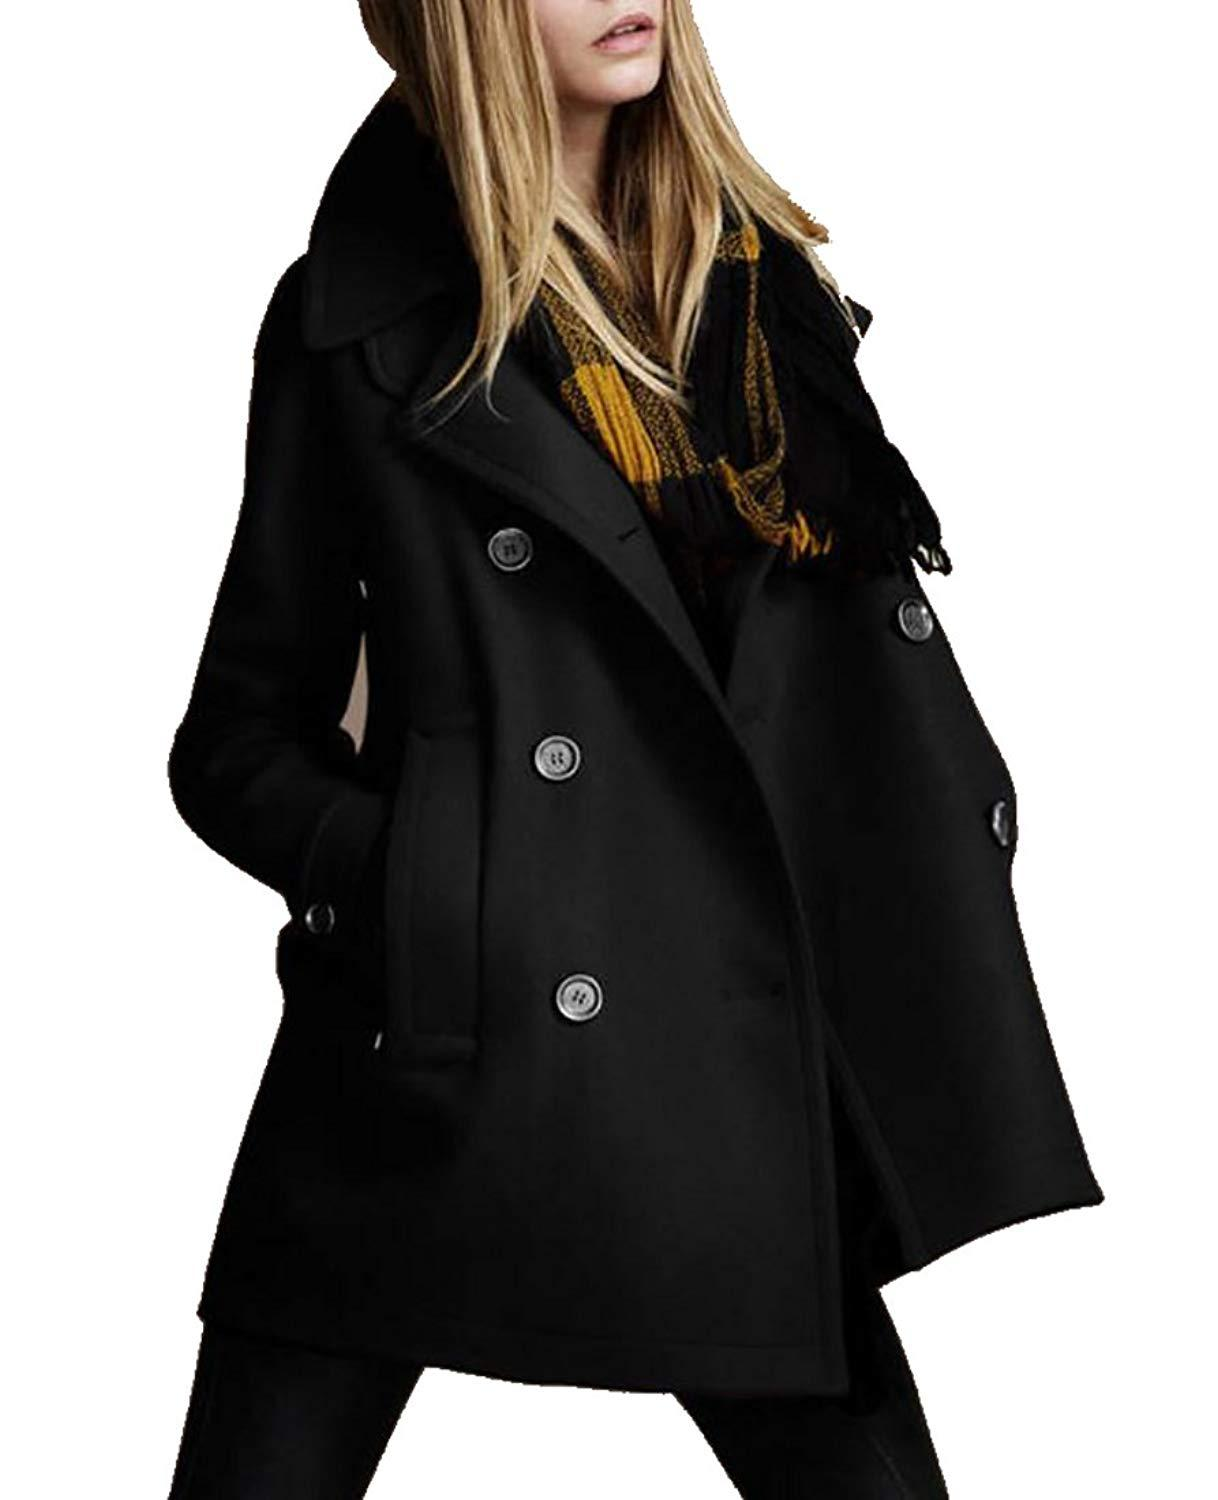 Womens Casual Slim Double Breasted Lapel Solid Peacoat Trench Coat UK 2019  From Goldenharvest 805d623183